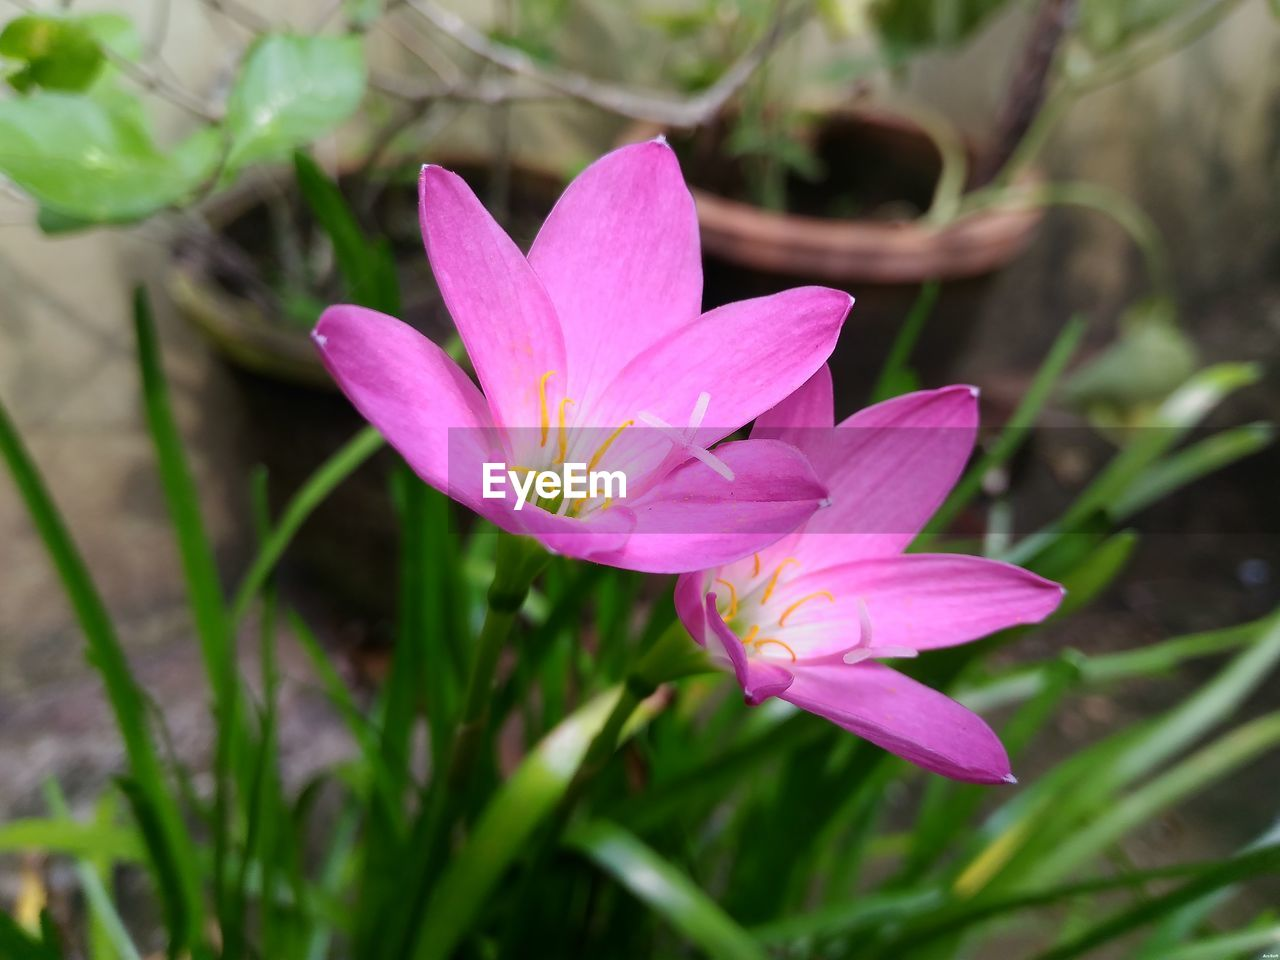 flower, petal, nature, fragility, freshness, growth, beauty in nature, no people, pink color, plant, outdoors, day, close-up, flower head, leaf, blooming